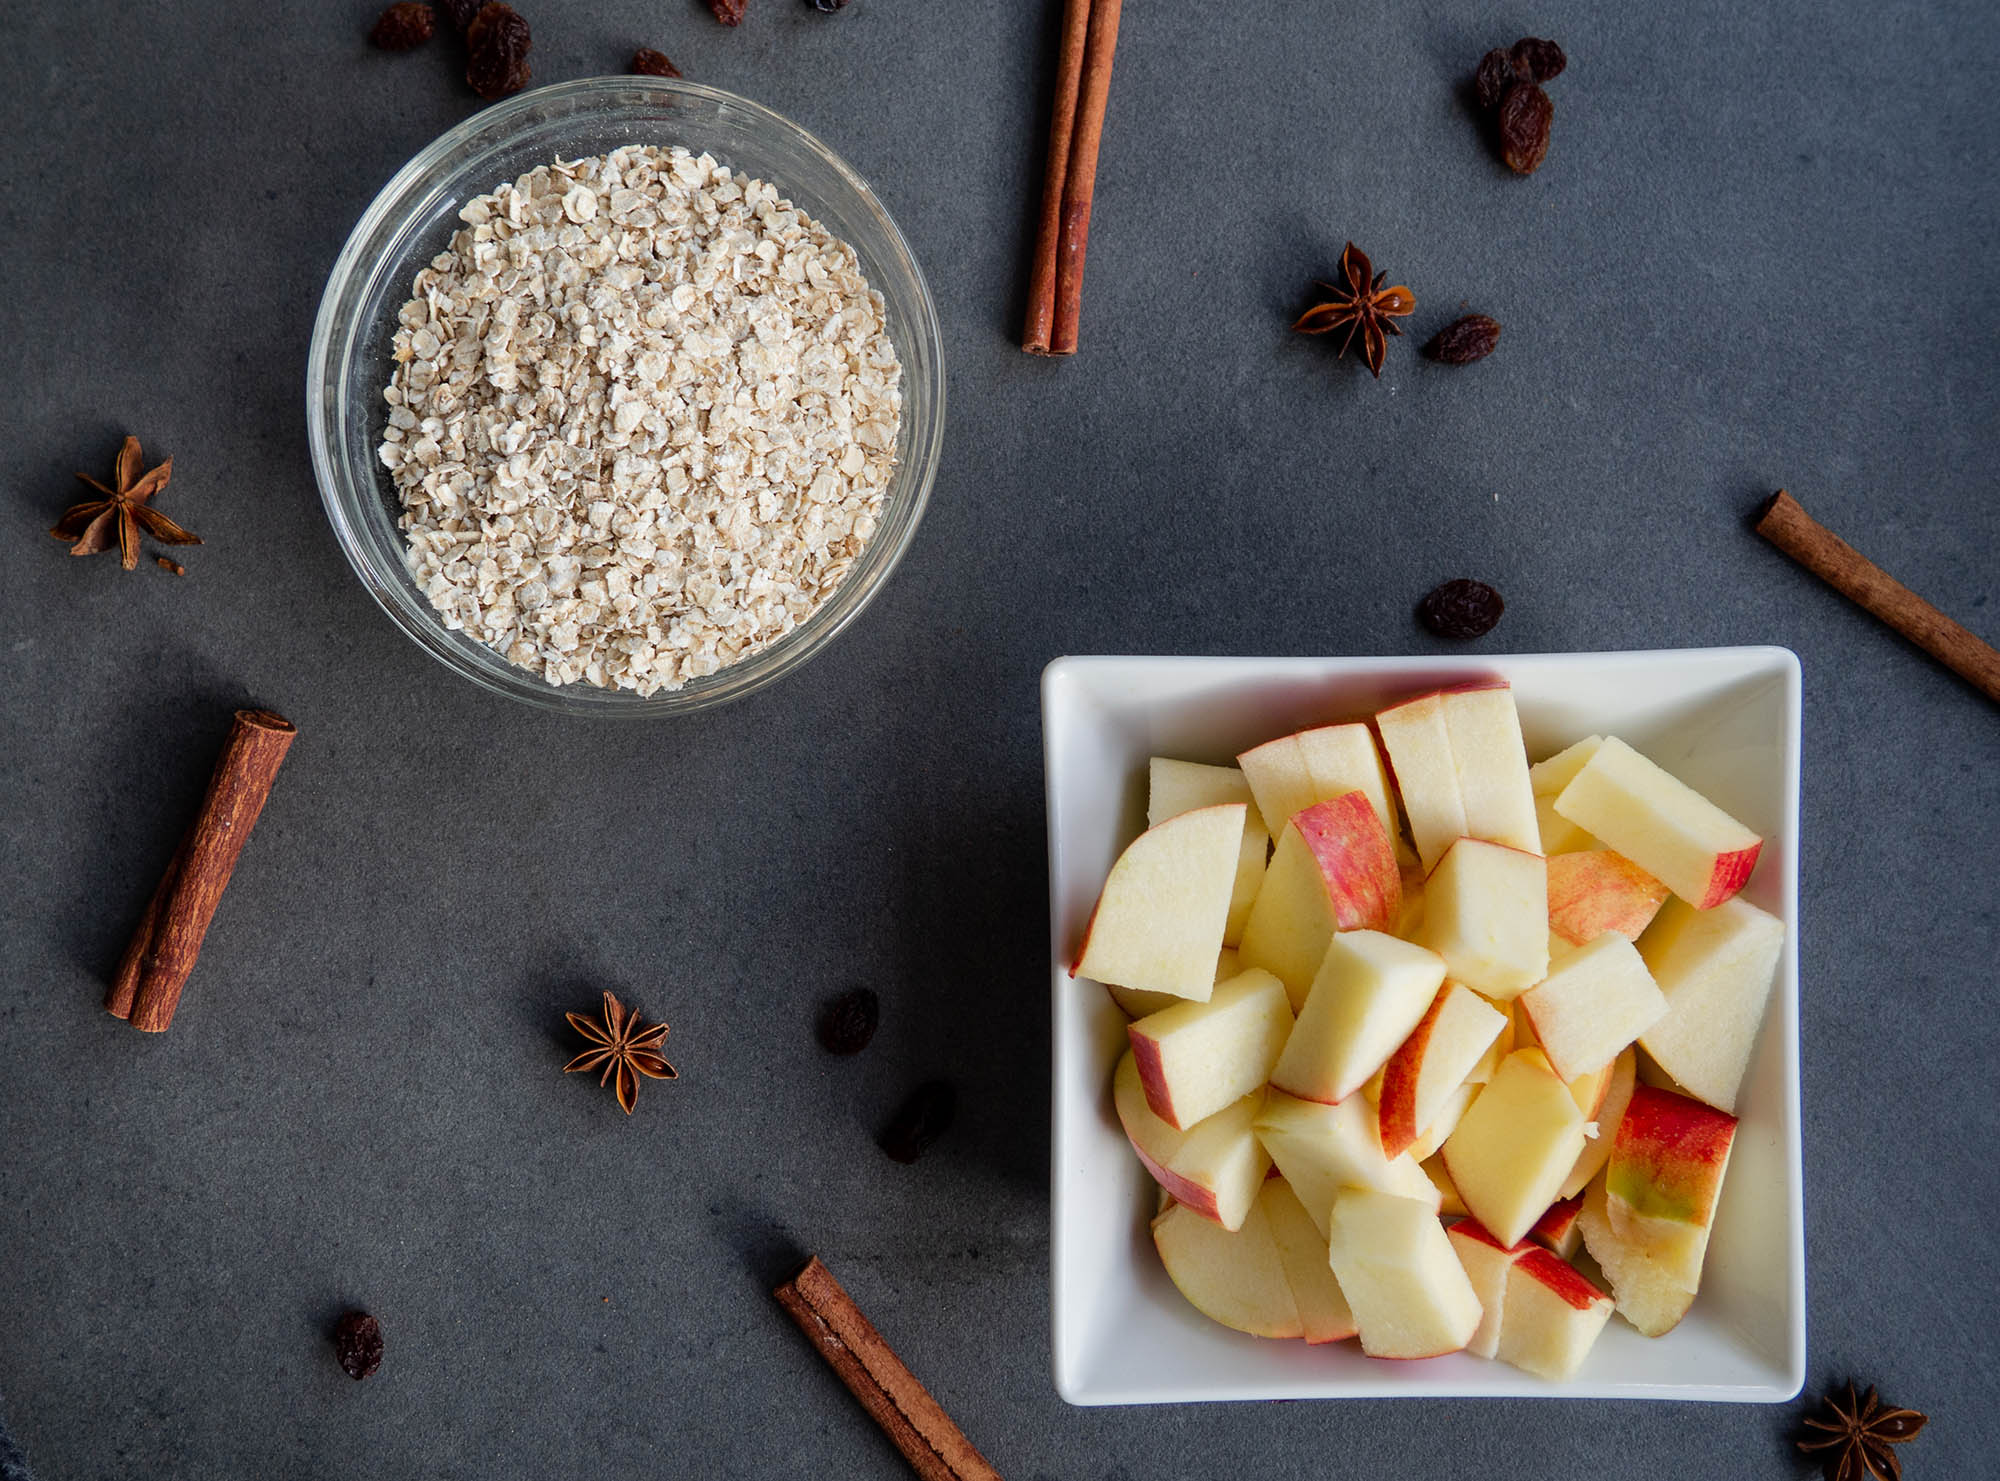 oat flakes in bowl, apple cutted in cubes